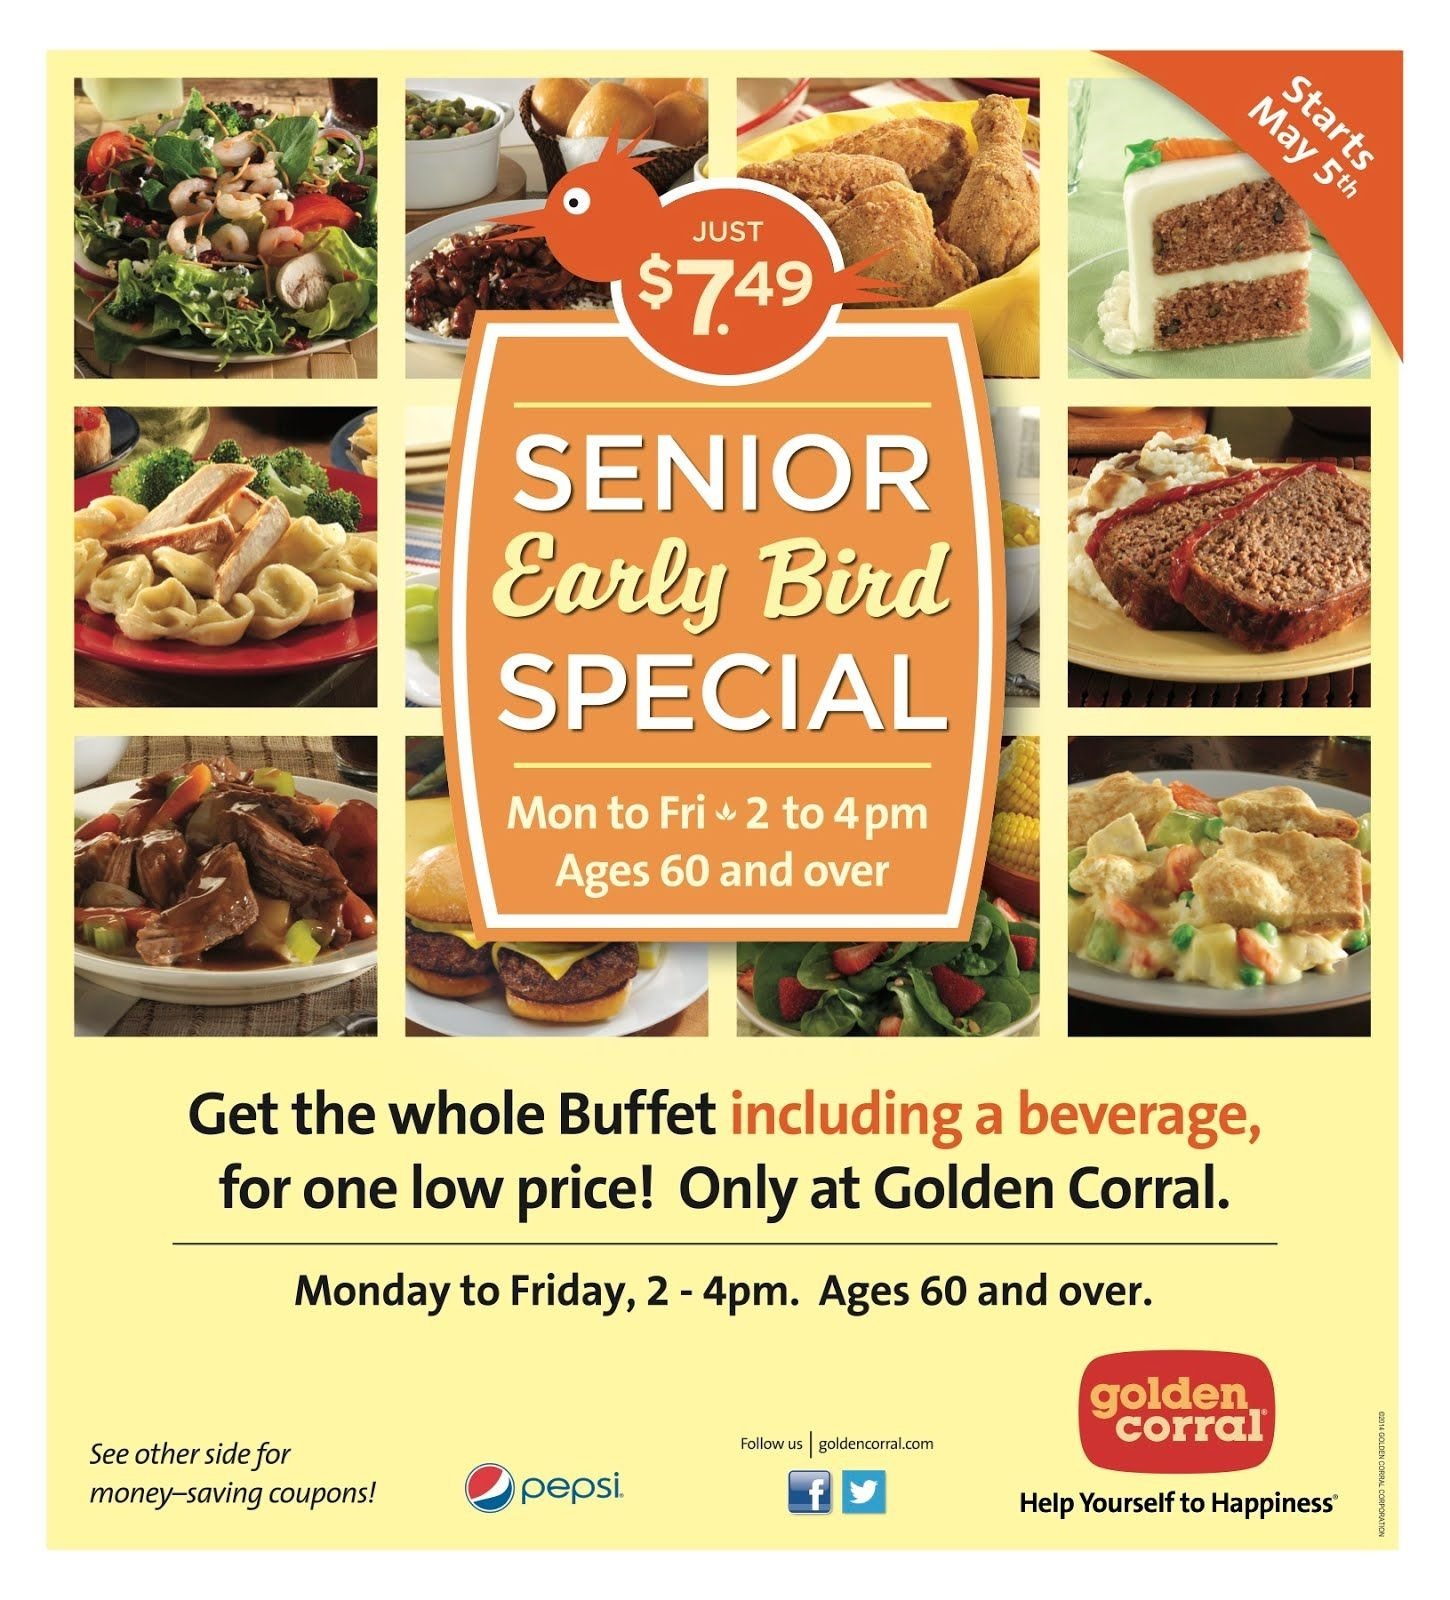 Golden Corral: Senior Early Bird Special, M-F 2-4Pm, 60+, For $7.49 - Free Las Vegas Buffet Coupons Printable